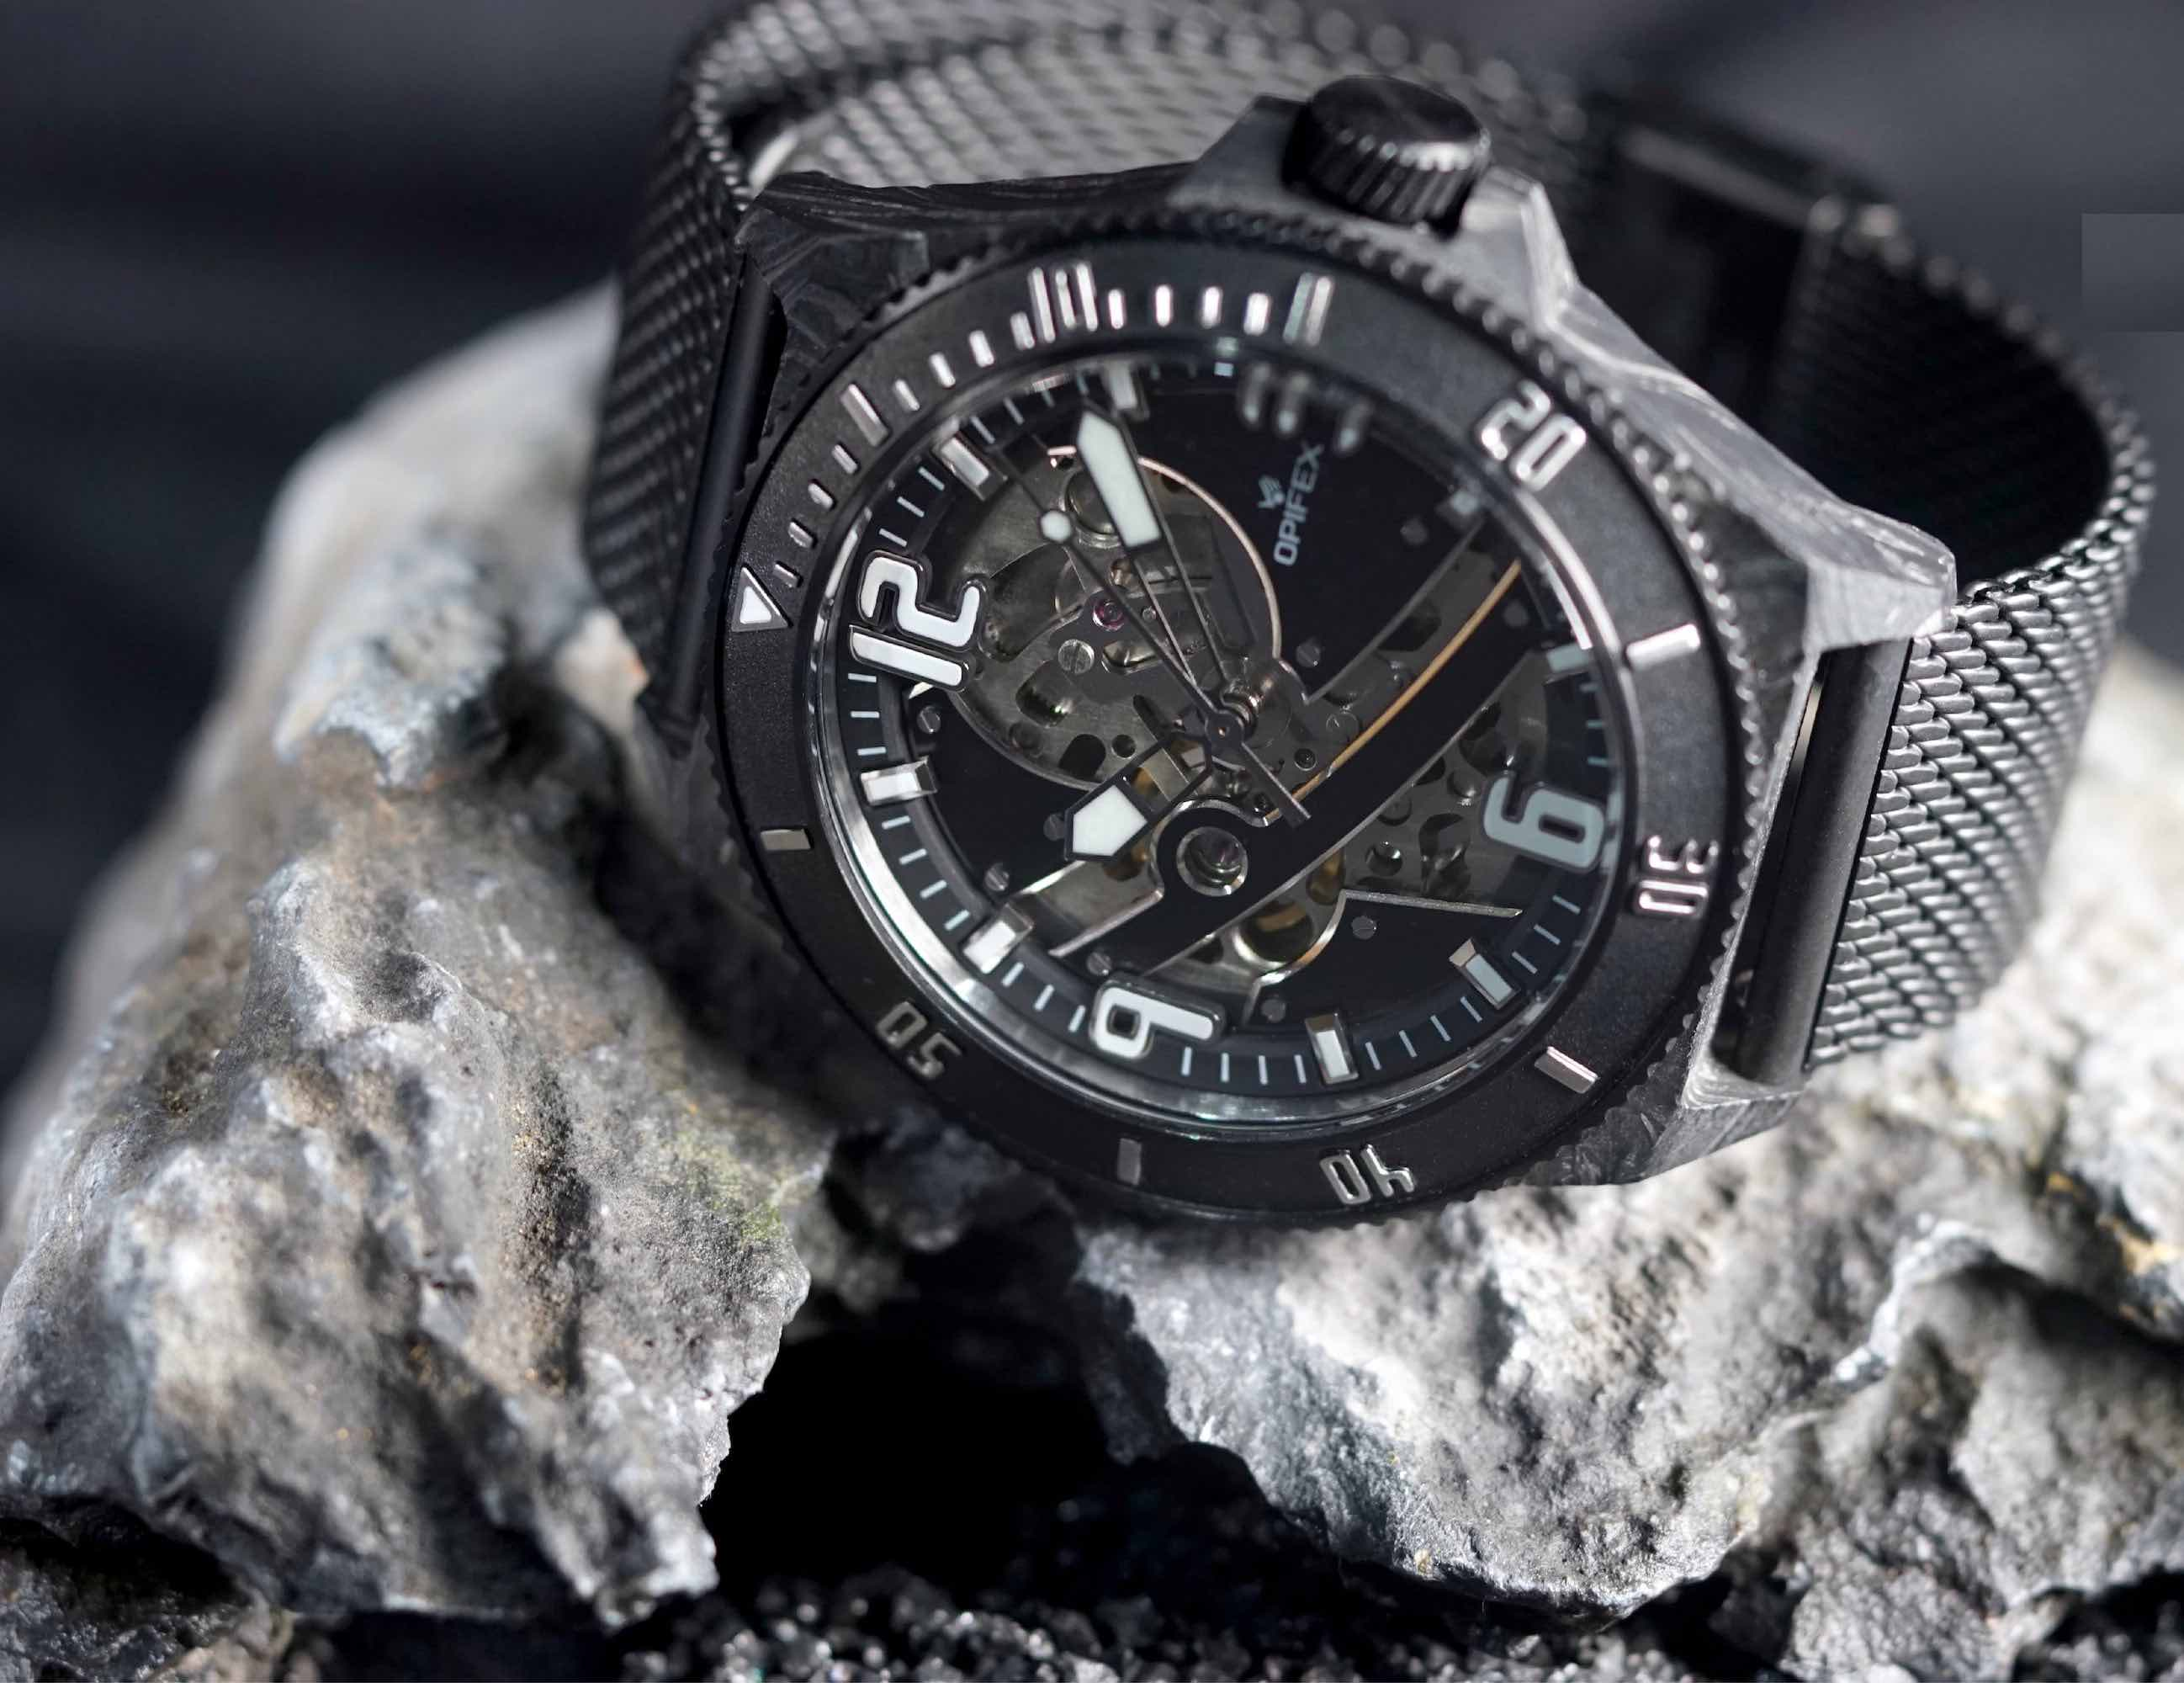 22f2c20ff This dive watch is complete with a skeleton dial and affordable price